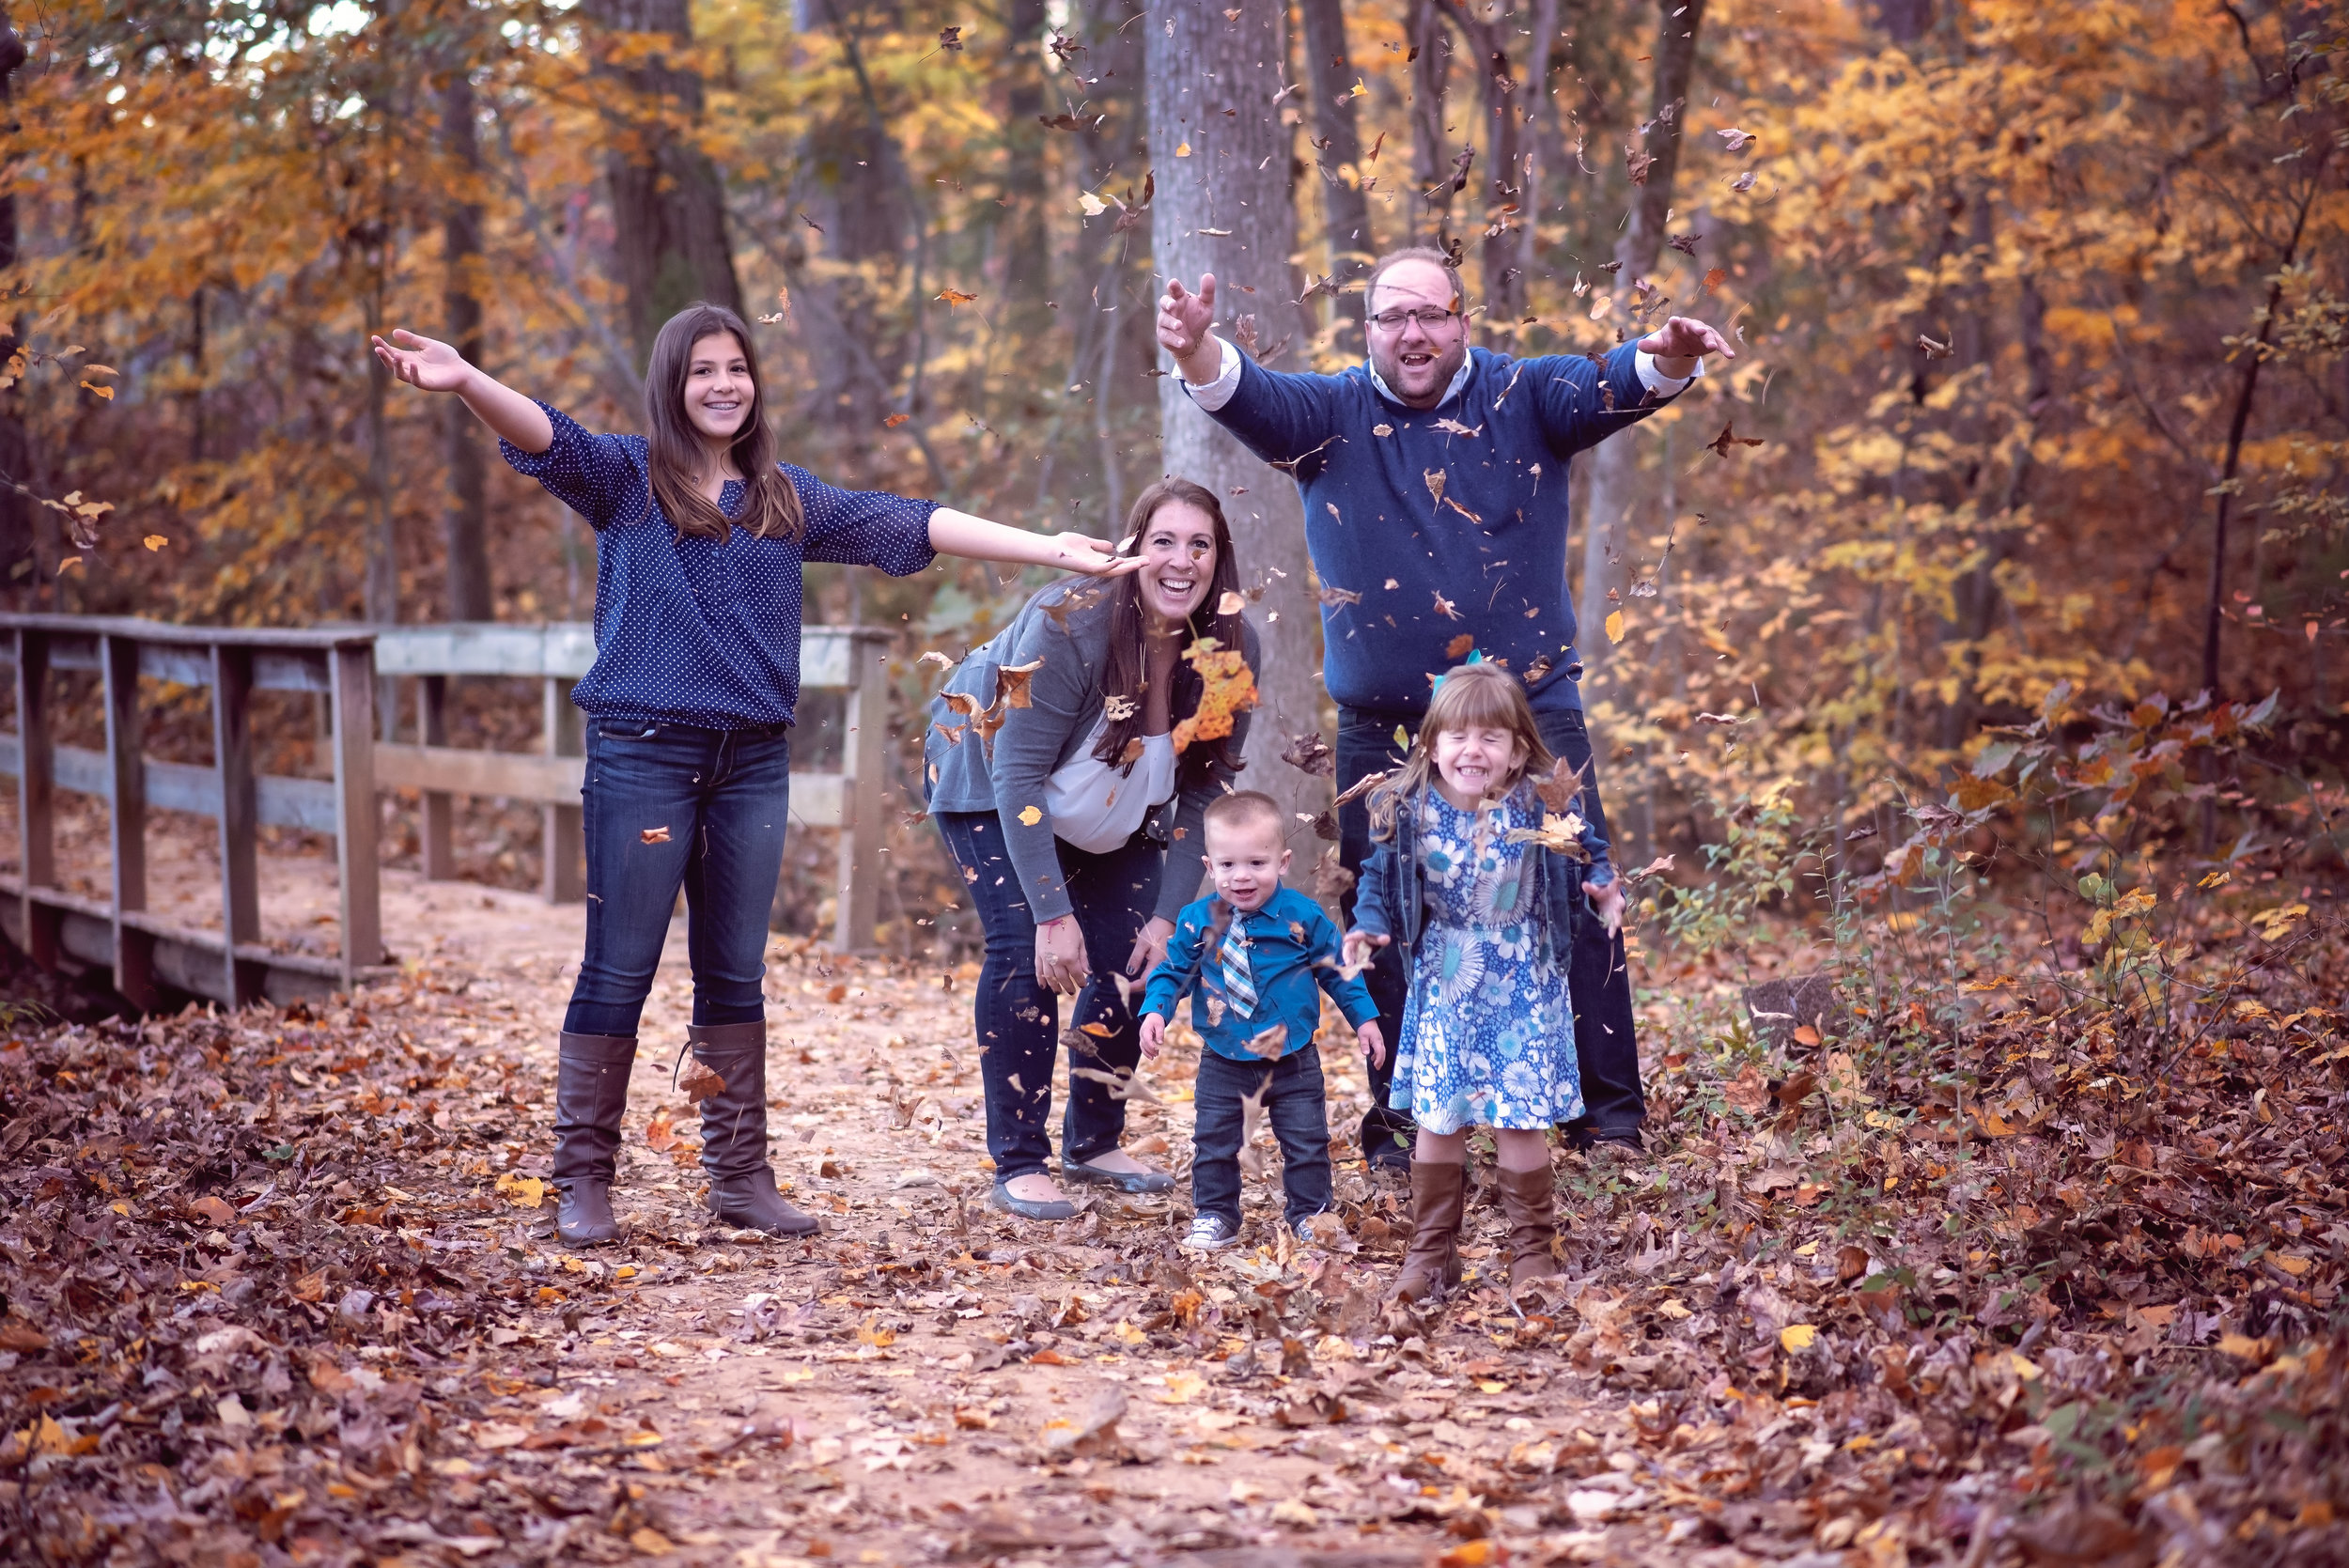 Family Photography at Anne Springs Greenway, Fort Mill, SC